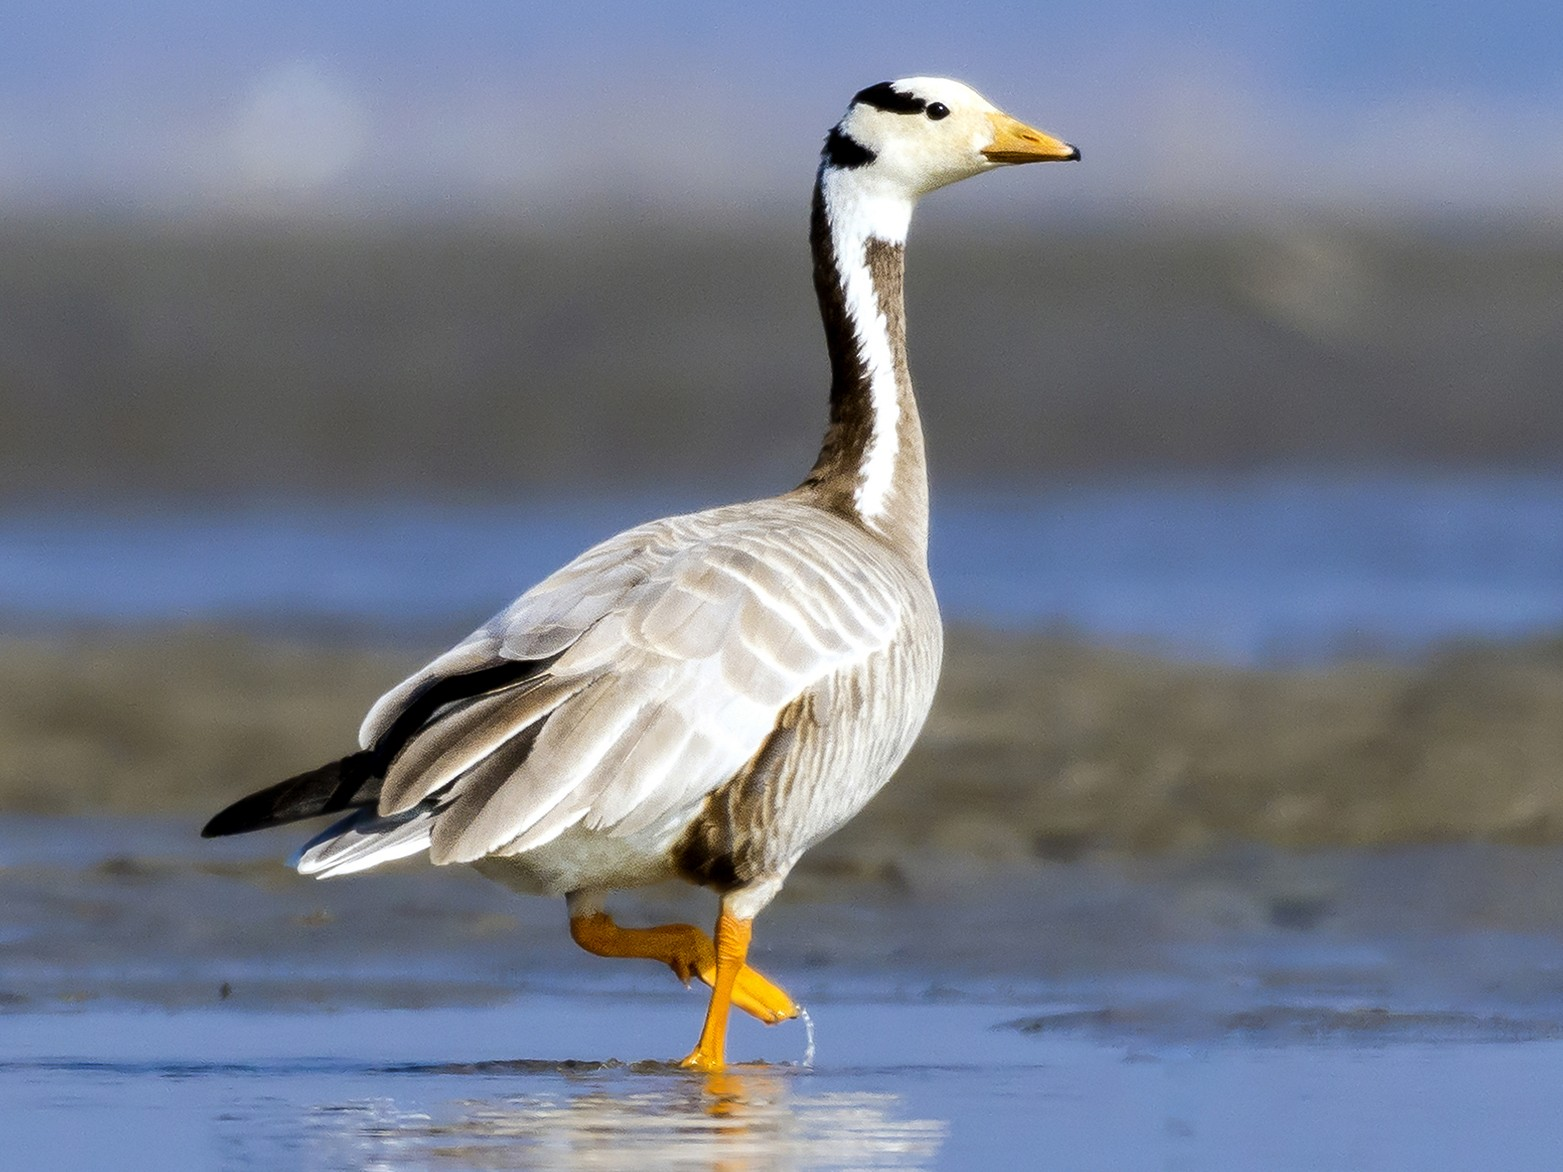 Bar-headed Goose - Asabul Islam